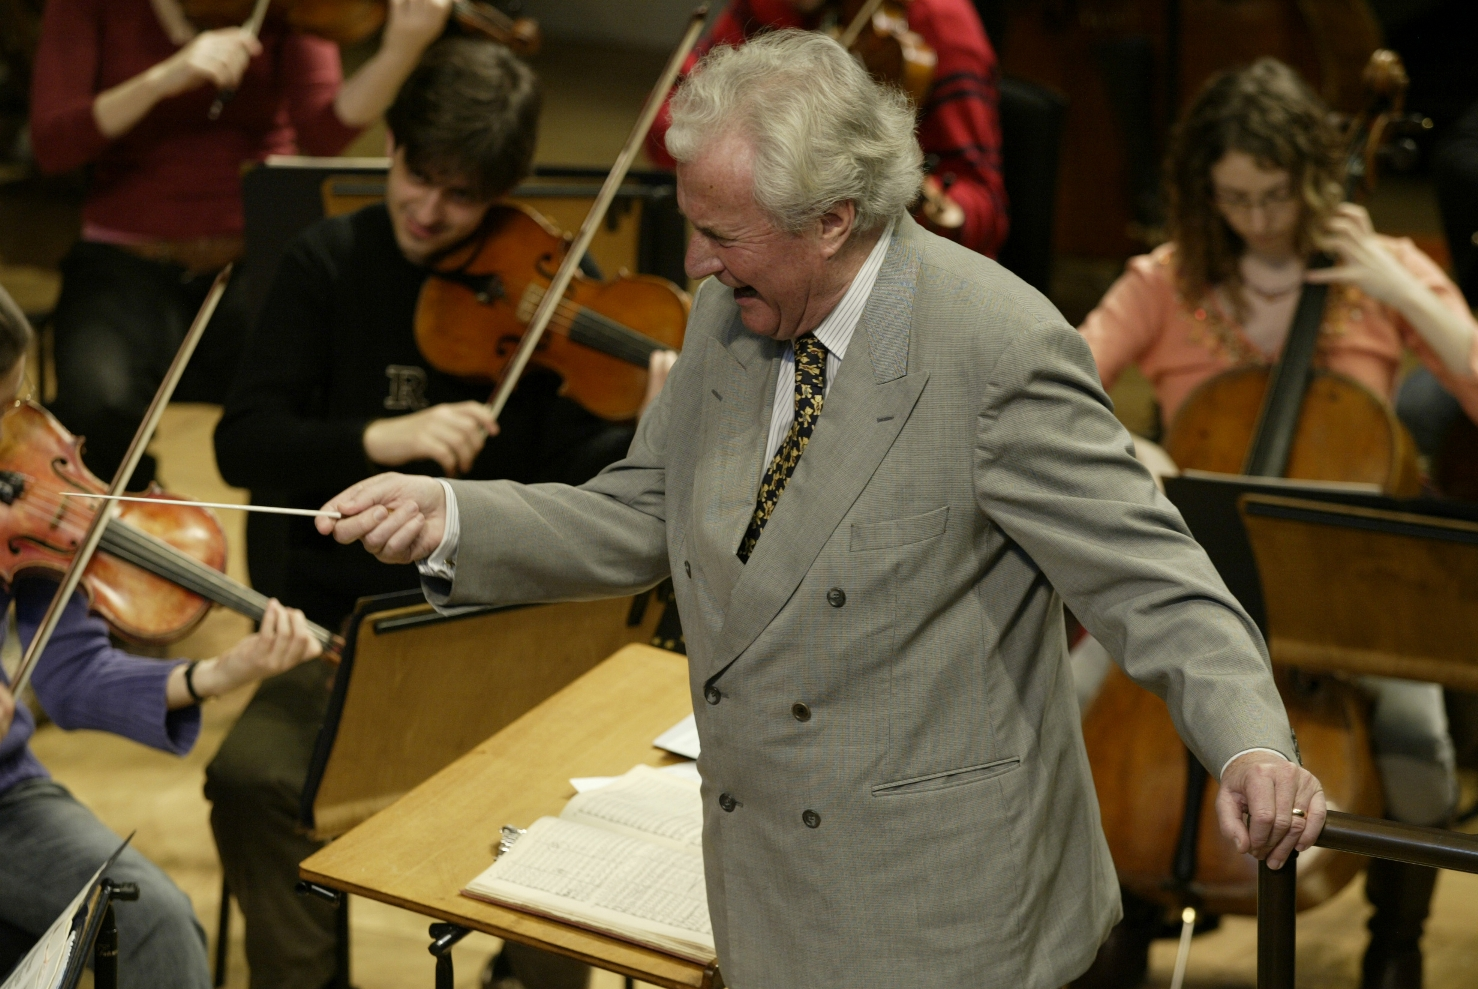 Sir Colin Davis conducting the European Union Youth Orchestra in 2005